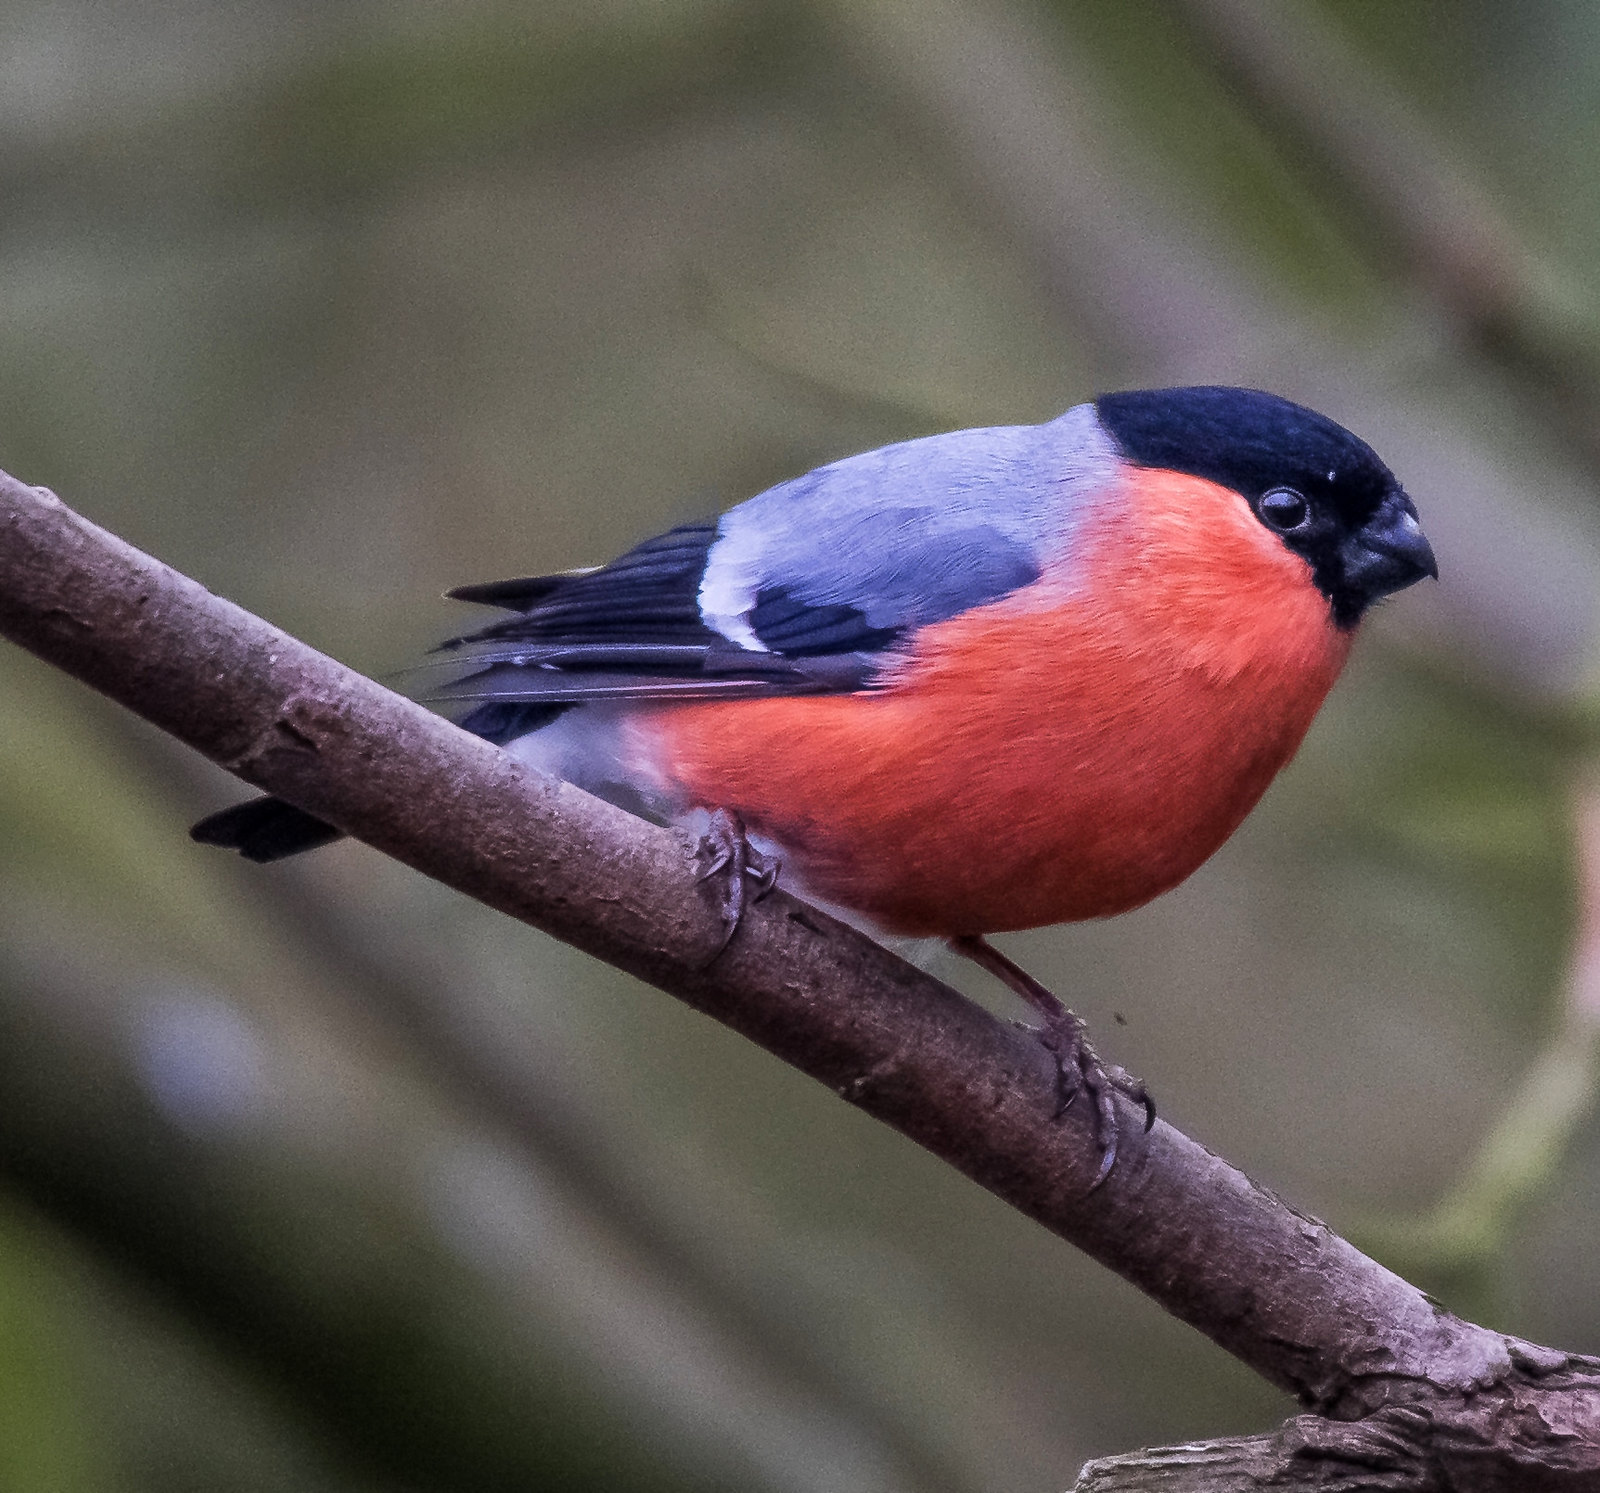 Bullfinch. Credit Michael Sveikutis